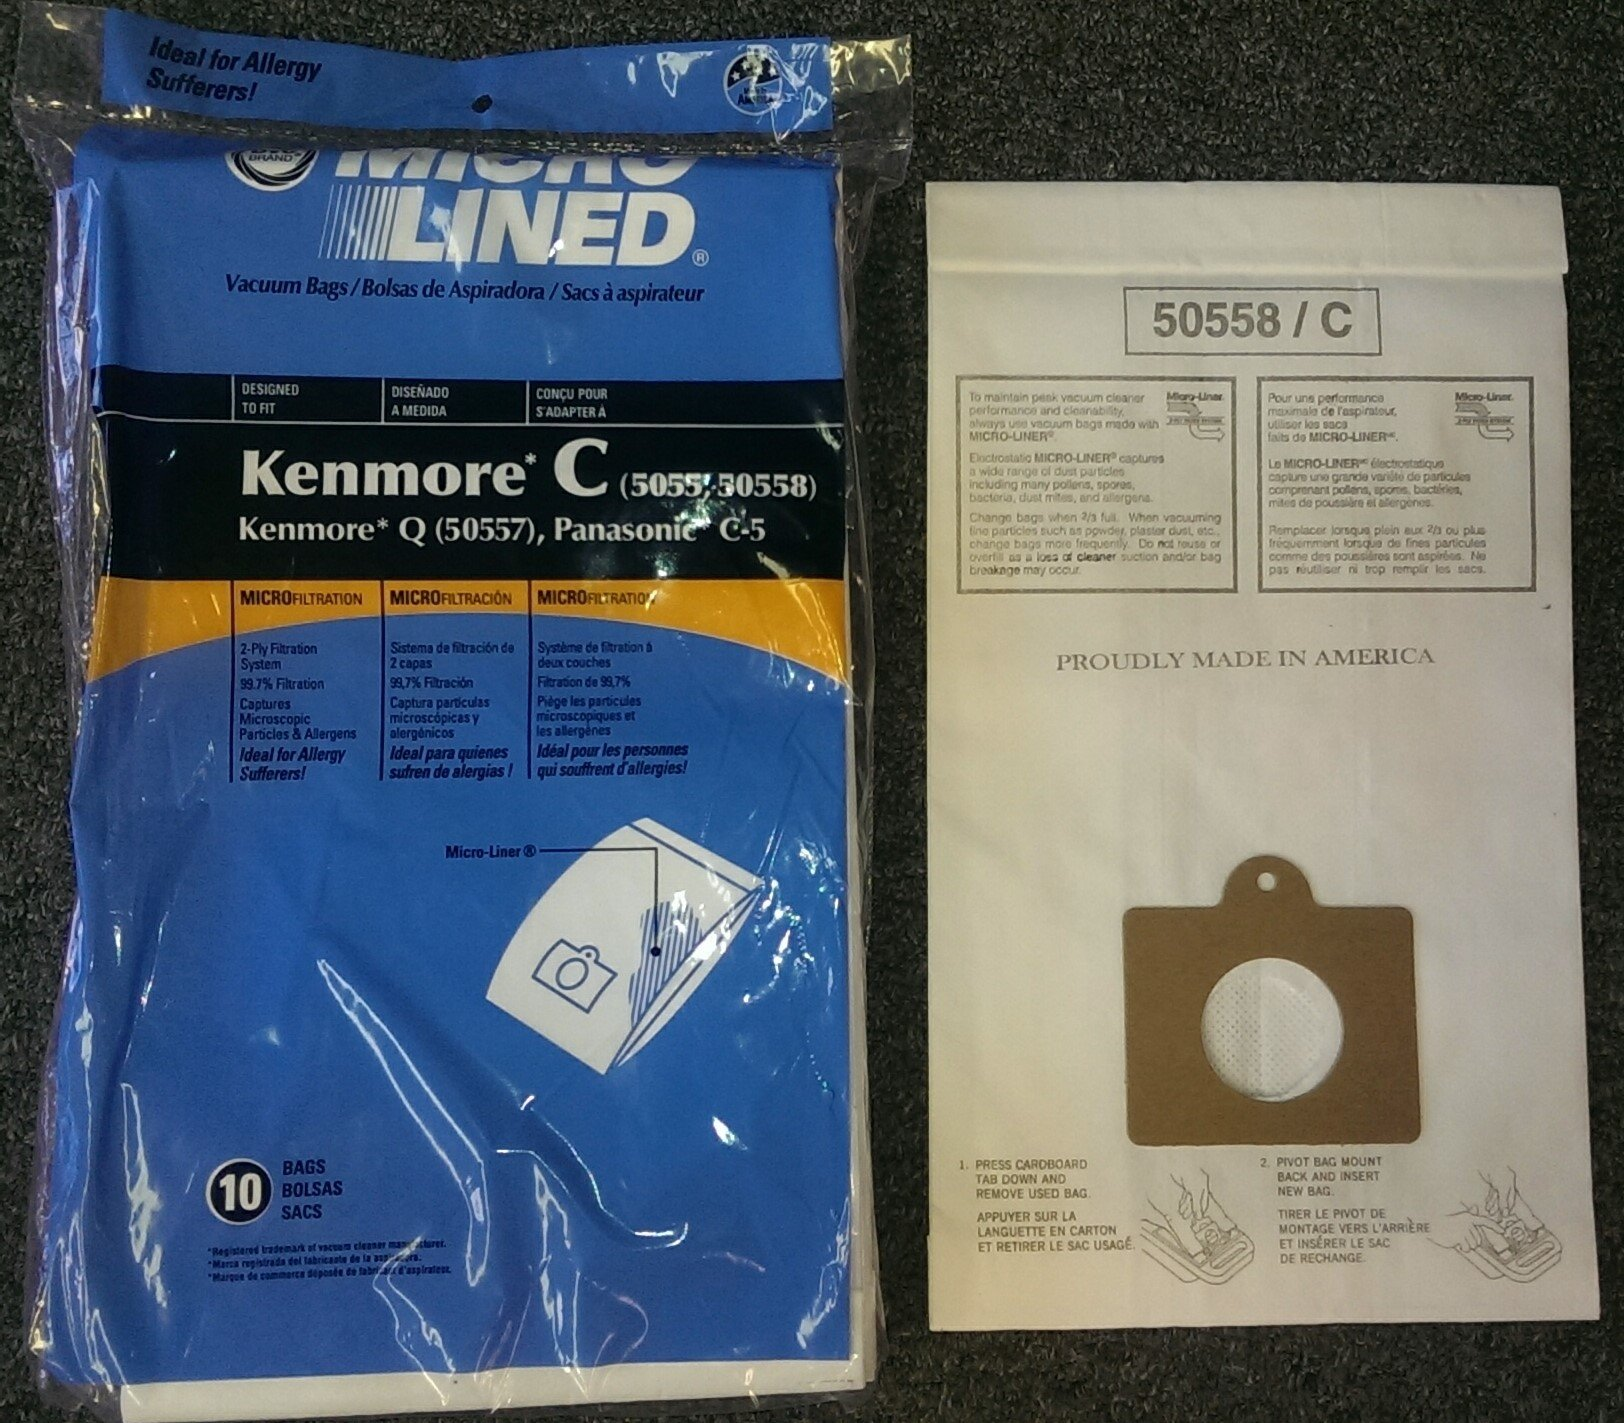 20 Kenmore Style C & Style Q 5055 50557 50558 Micro Lined Canister Vacuum Bags. Also Fits Panasonic C-5, C-18 by DVC 2 Fits Kenmore Canisters made in the Last 20 Years Including Whispertone, Intuition, Elite and Progressive; Also will fit Panasonic C-5 replace Kenmore part numbers; 5055, 50557, 50558, 20-50104, 50104, 54321, 20-54321, 53292, 631396, 20-53291, 53291, 20-53290, 53290, KM48751-12. Also fits the HEPA Cloth Kenmore Style Q bags. IDEAL FOR ASTHMA & ALLERGY SUFFERERS, HOMES WITH BREATHING ISSUES. Designed to fit Kenmore Canister models 23040, 23243, 23350, 24320, 24321, 24325, 24326, 24327, 24350, 24390, 24410, 24971, 24975, 24981, 24991, 25430, 2621, 26312, 26320, 26325, 26355, 26390, 26395, 26410, 26413, 26430, 26435, 26450, 26455, 27514, 27515, 27614, 27615, 27814, 27815, 27914, 27915, 28014 and 28015 Canister models.